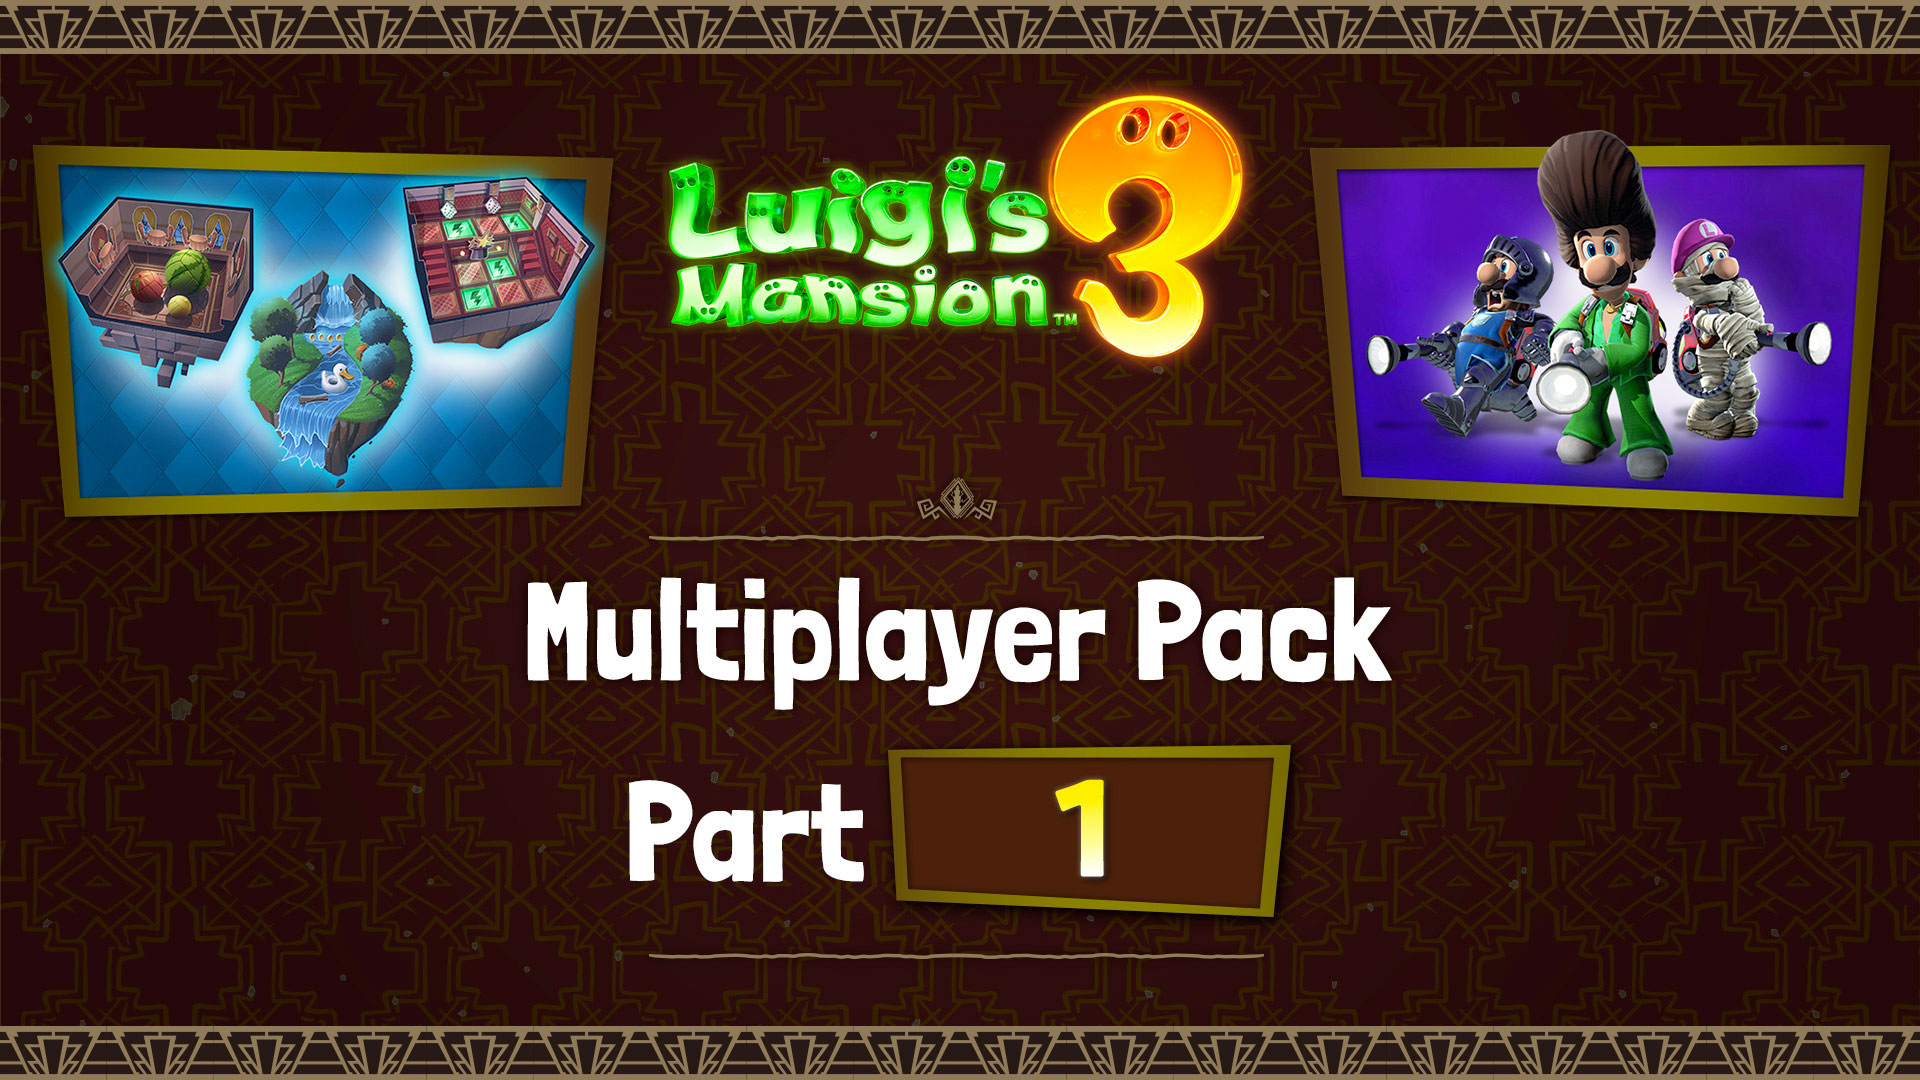 Luigi's Mansion 3 Multiplayer Pack DLC